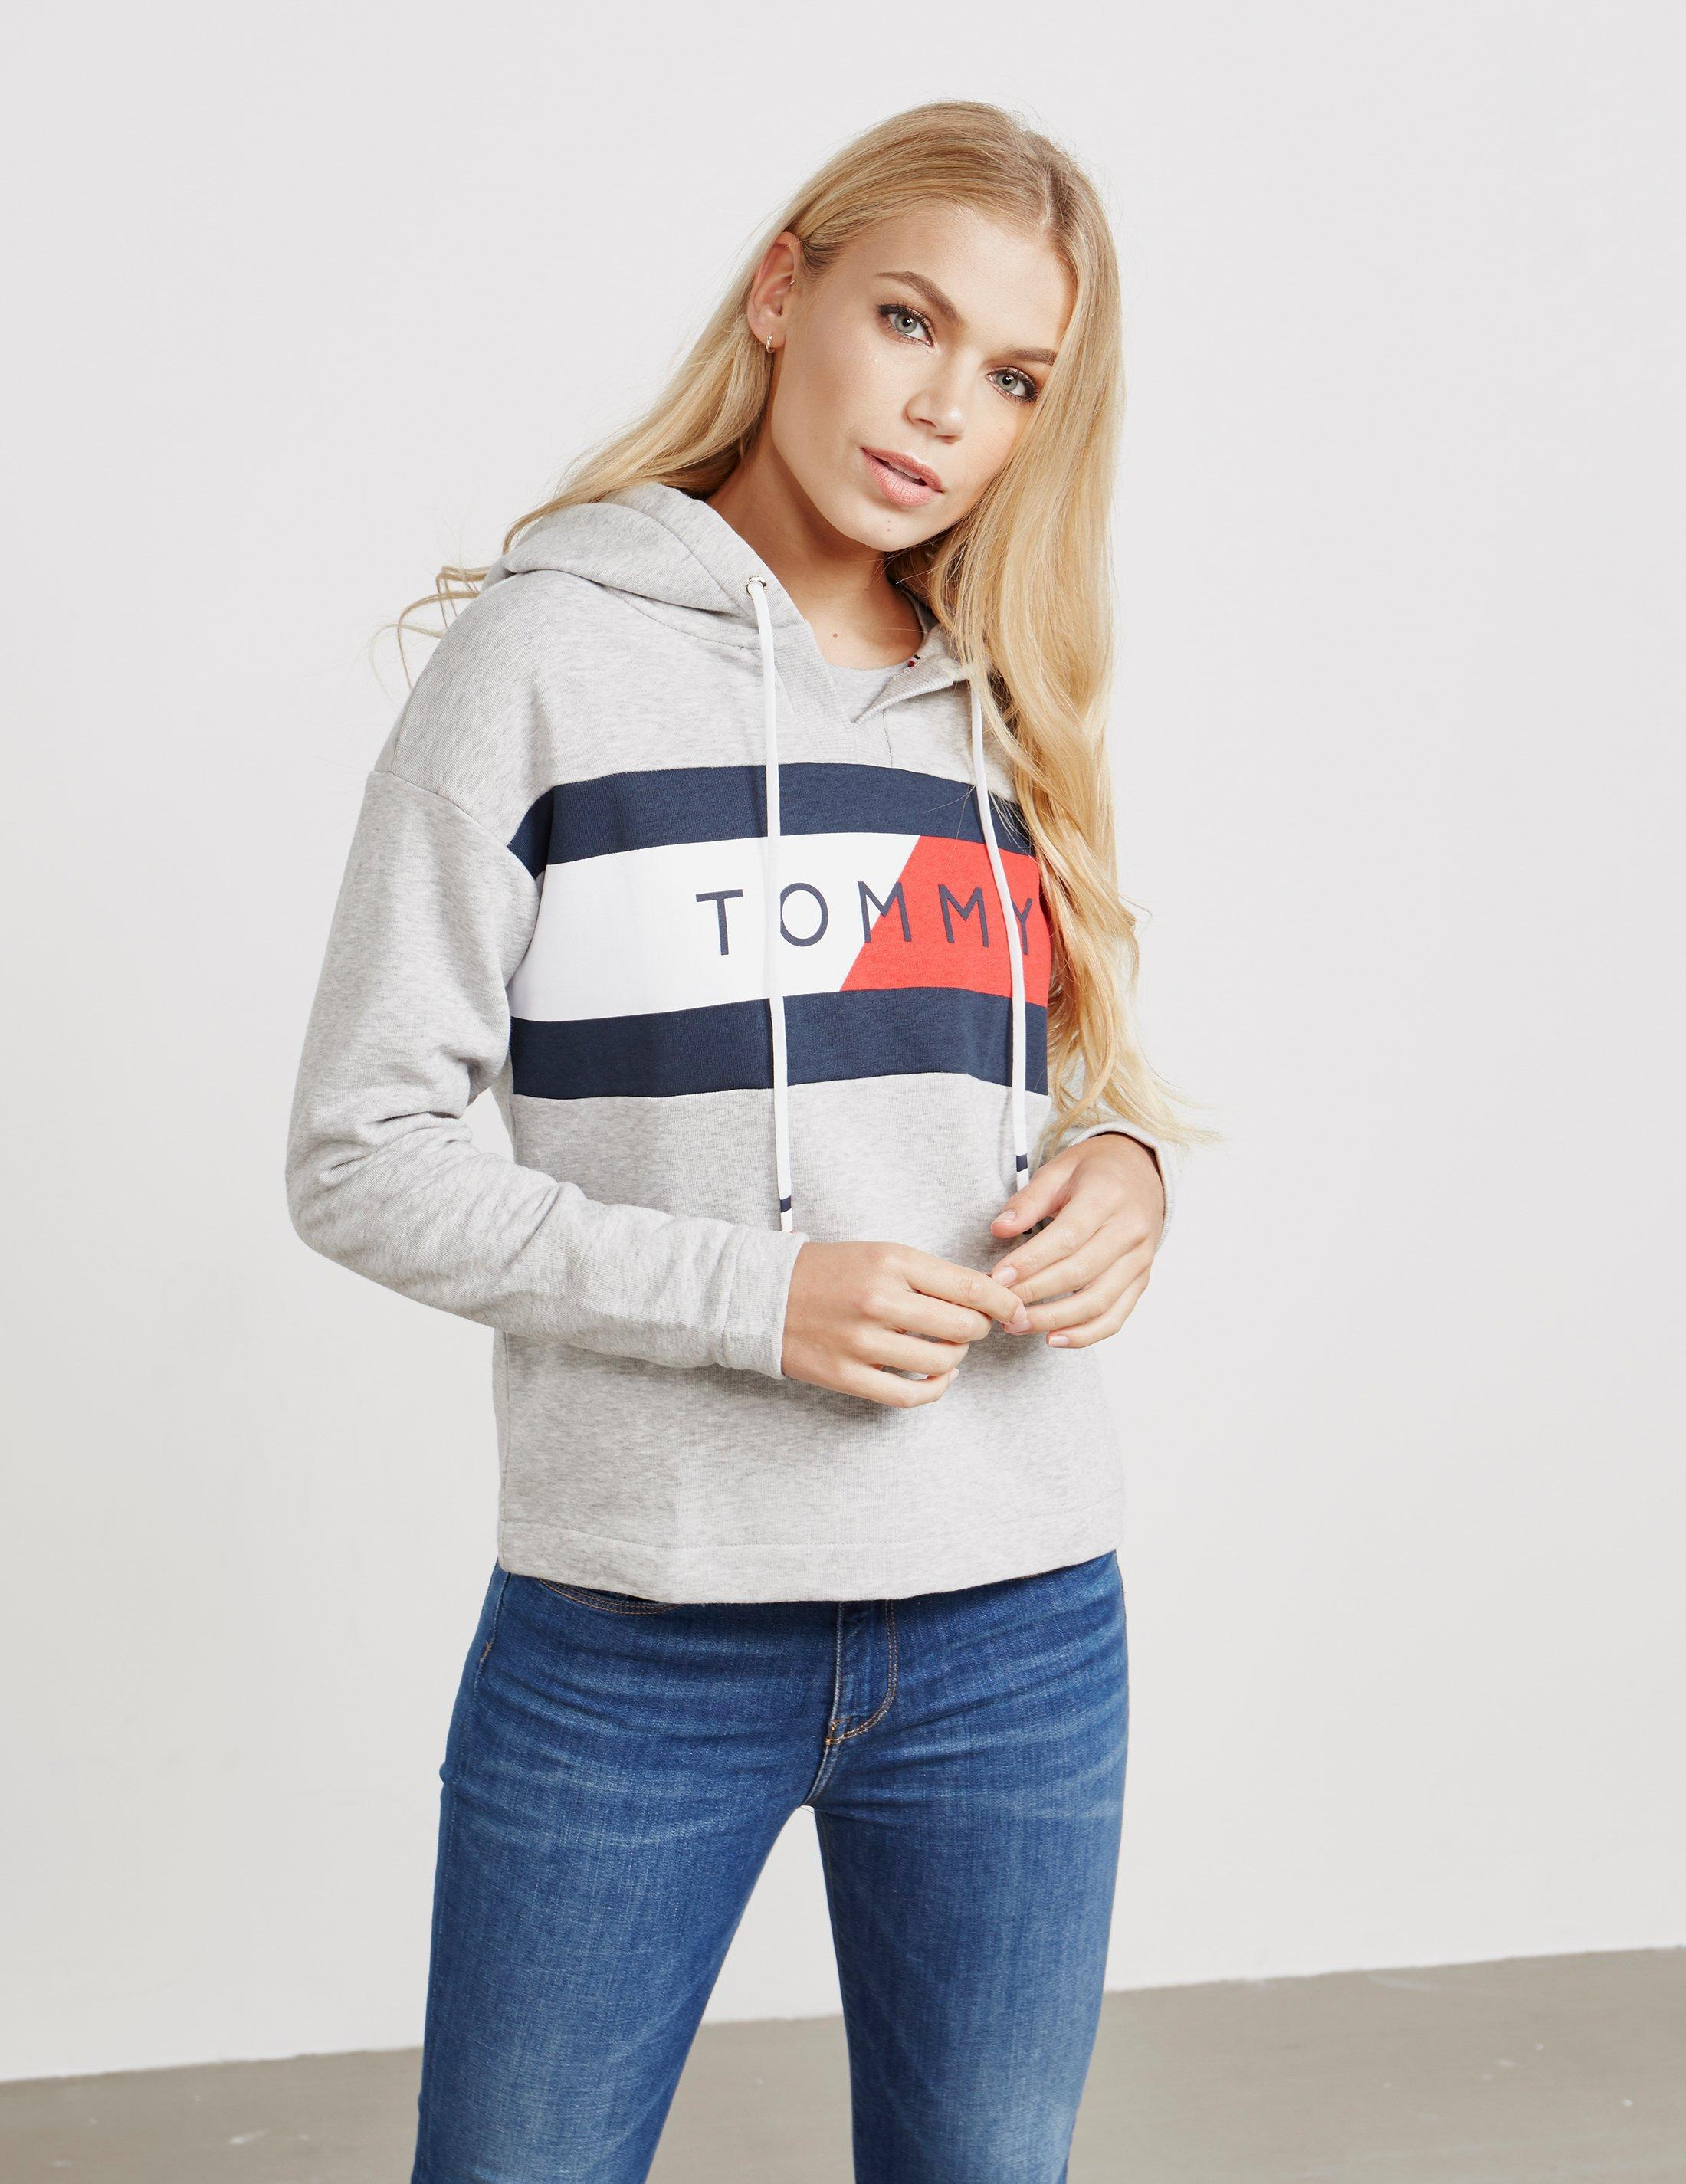 854b7e98dfd301 Tommy hilfiger womens athletic logo flag overhead hoodie grey jpg 2200x2850  Female tommy hilfiger underwear